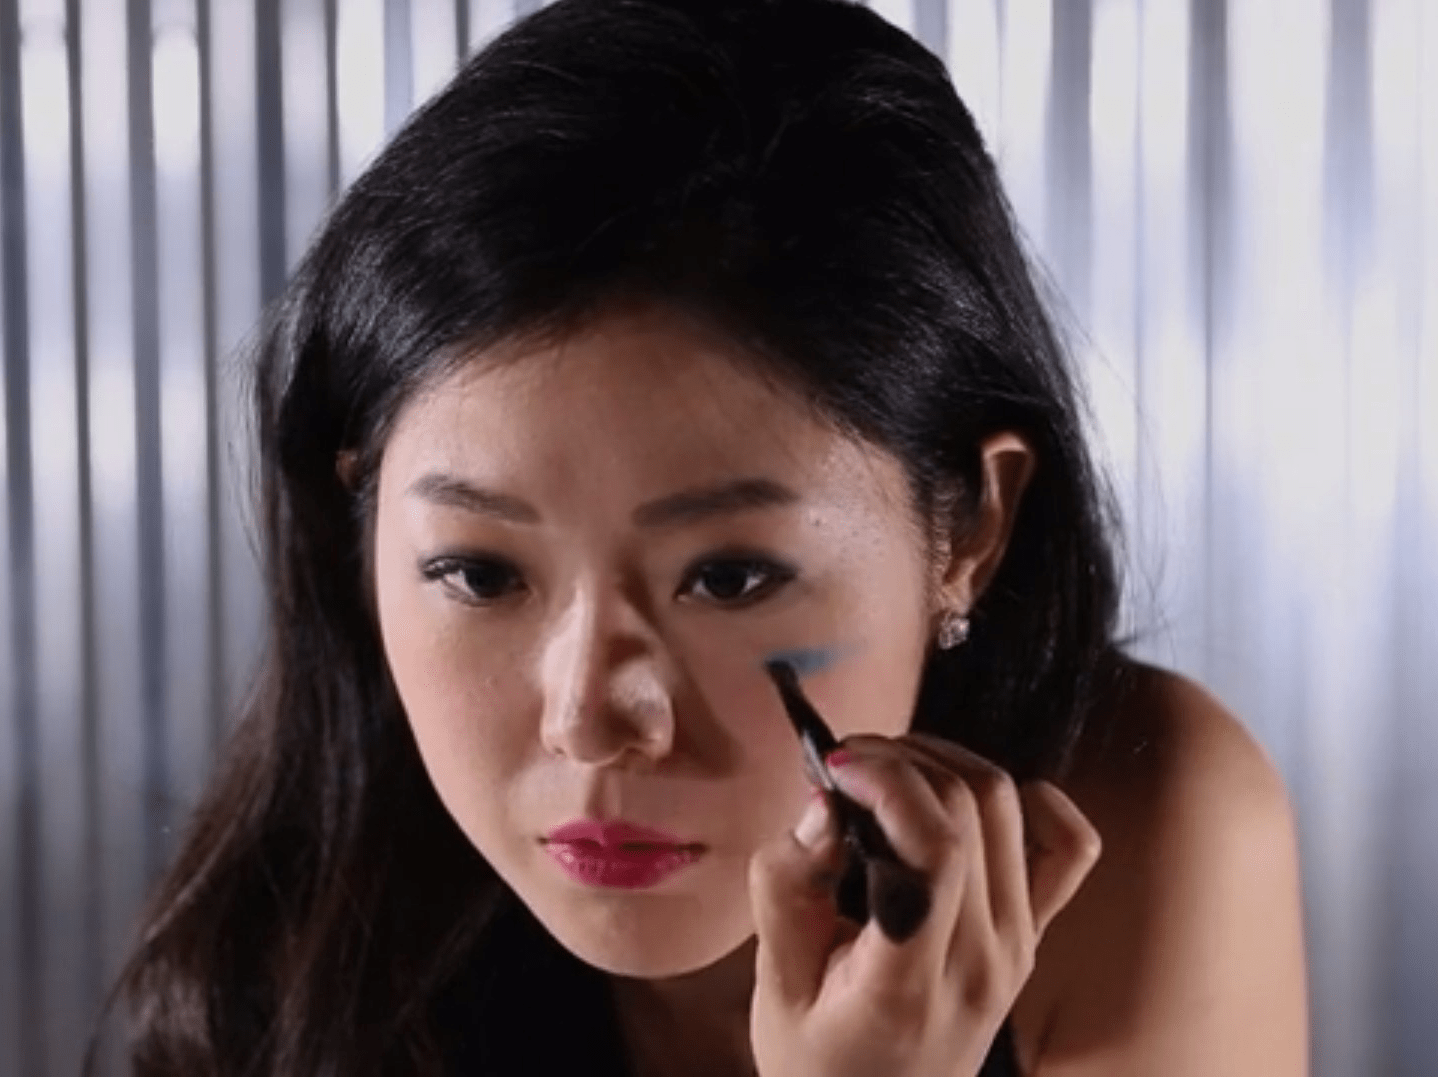 Mink lets you 3D print customized makeup from your home computer.